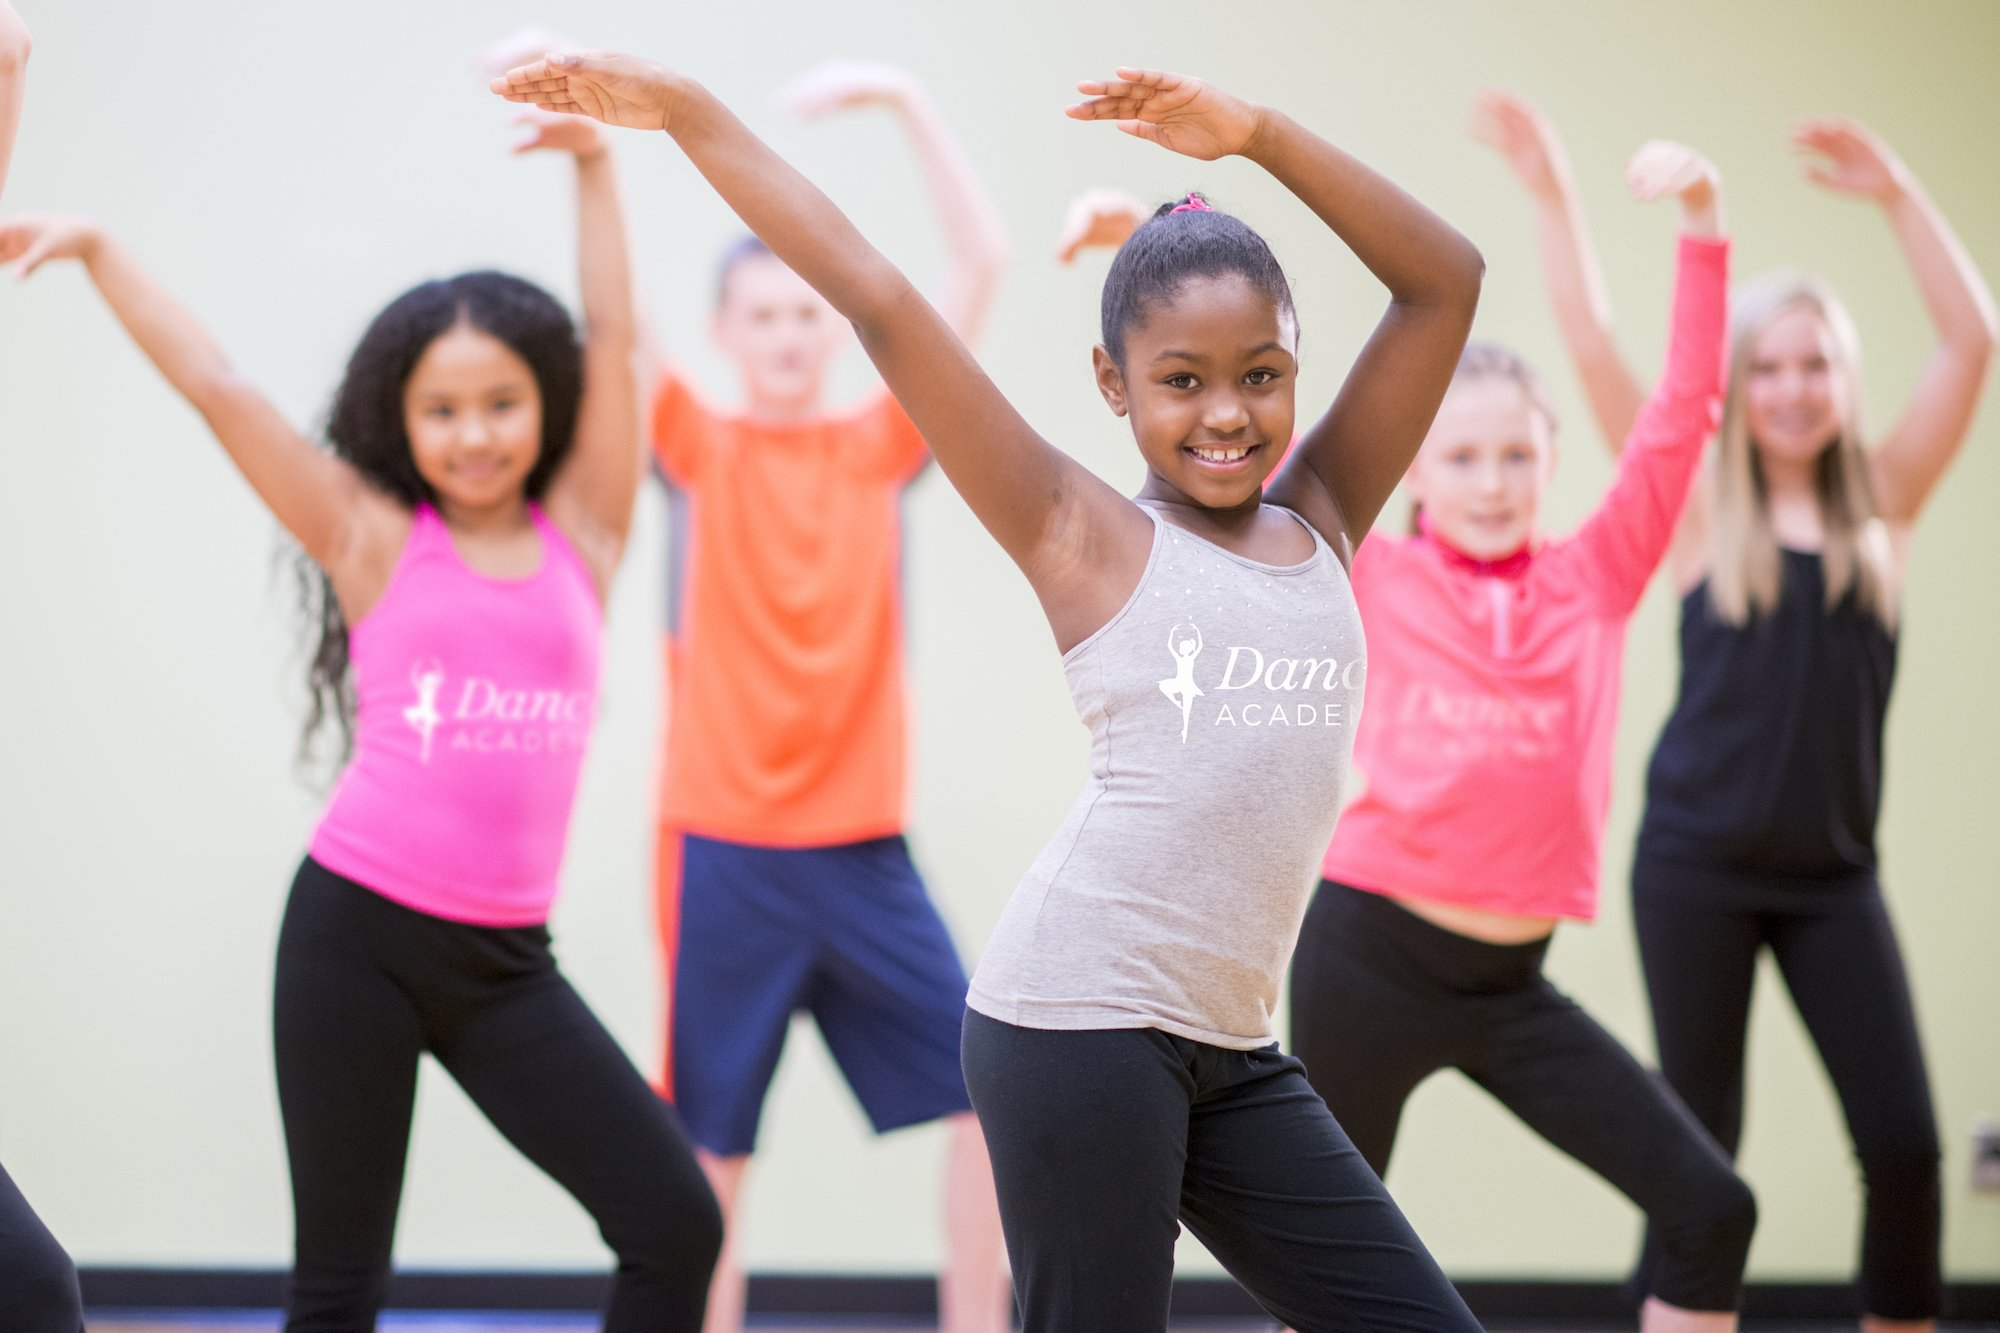 Young dancers wearing personalized apparel